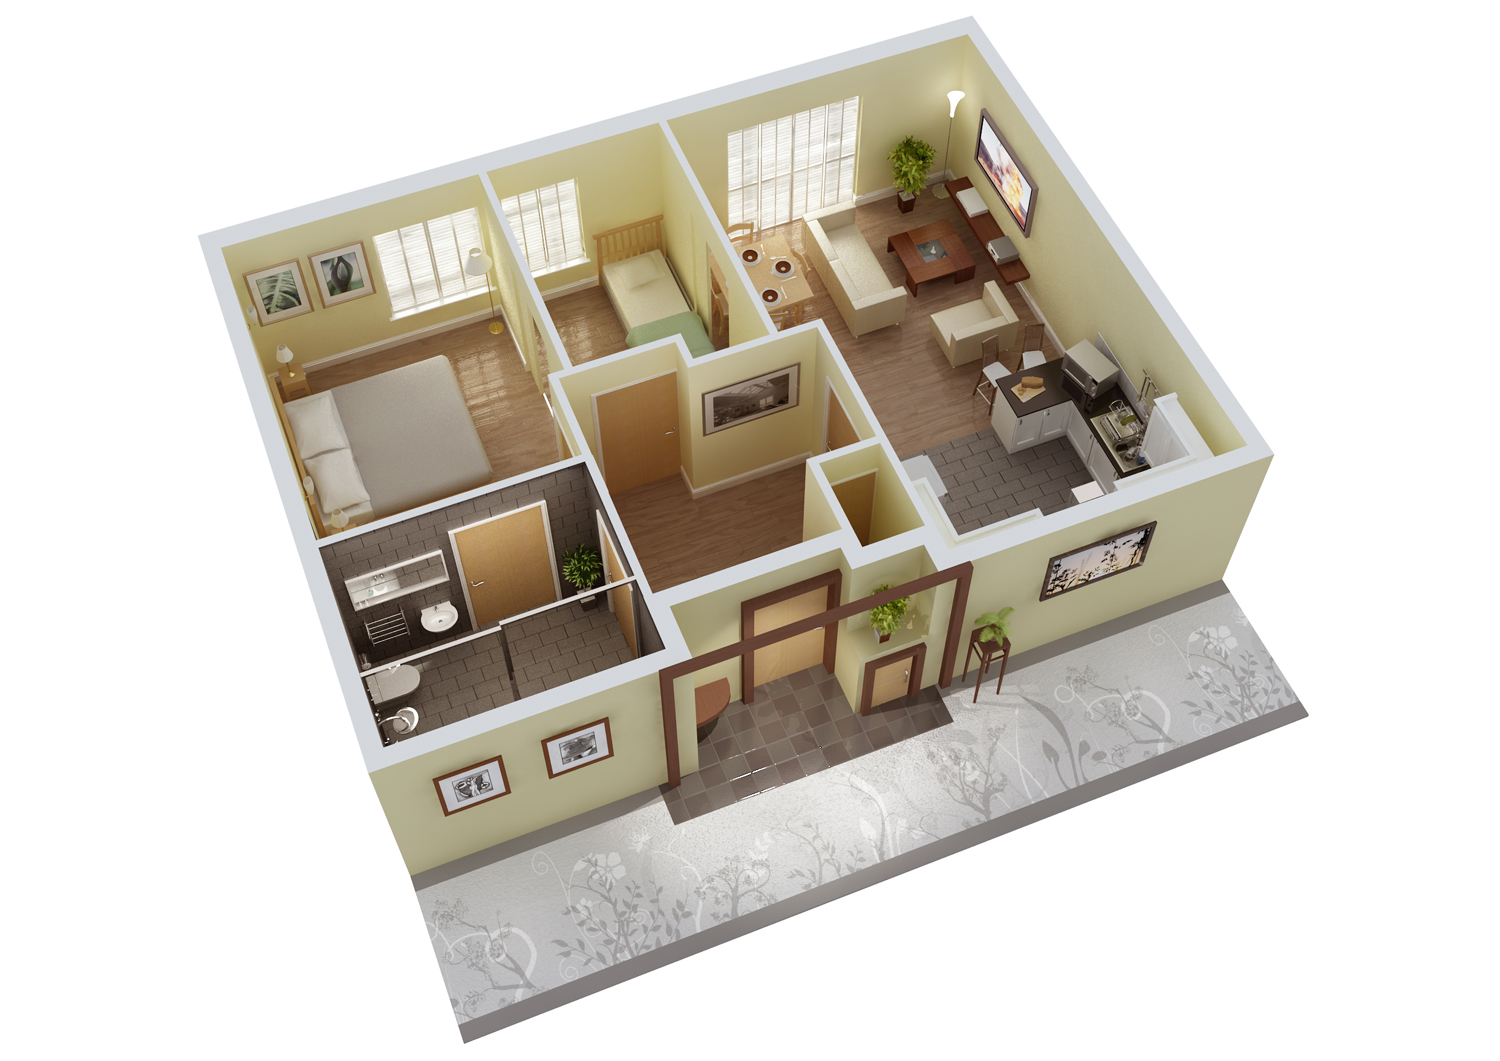 Mathematics resources project 3d floor plan Home design plans 3d